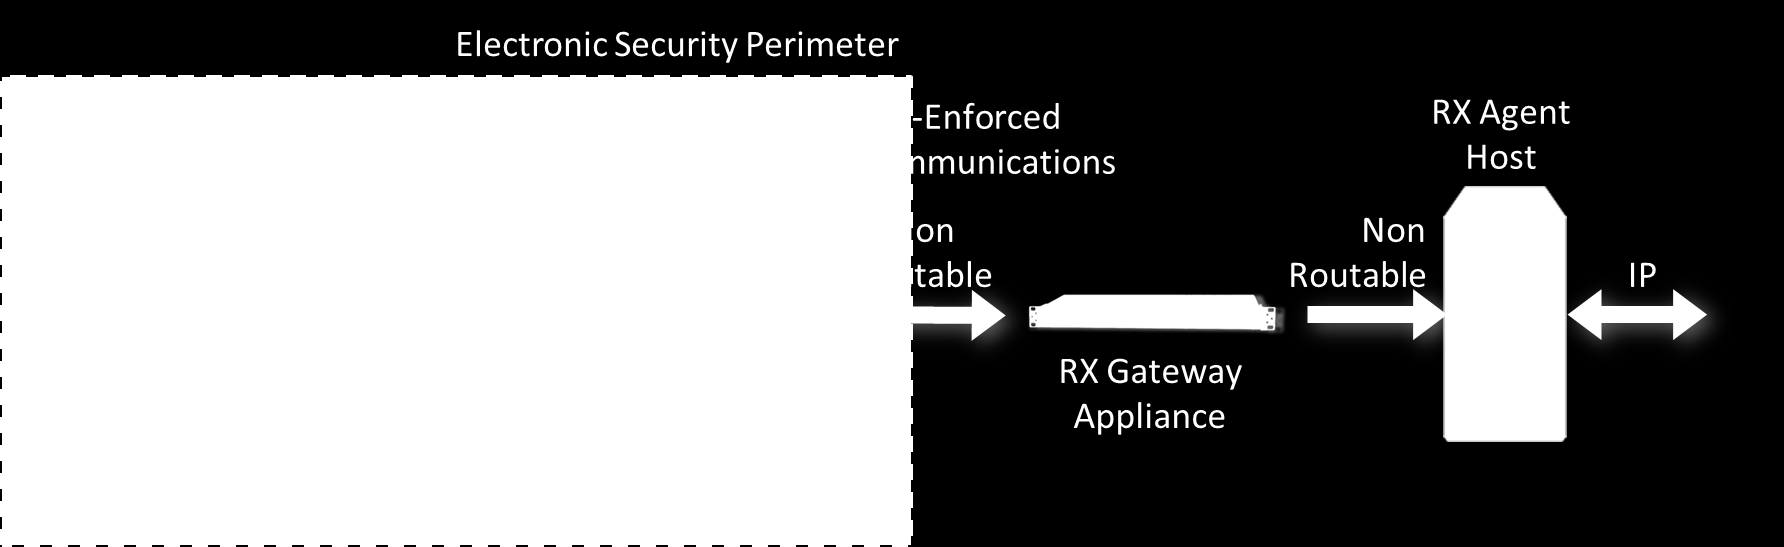 3 The Hardware/Software Unidirectional Security Gateway Solution When members of the CIP V5 drafting team are asked this question, they respond that the term refers to hardware-enforced